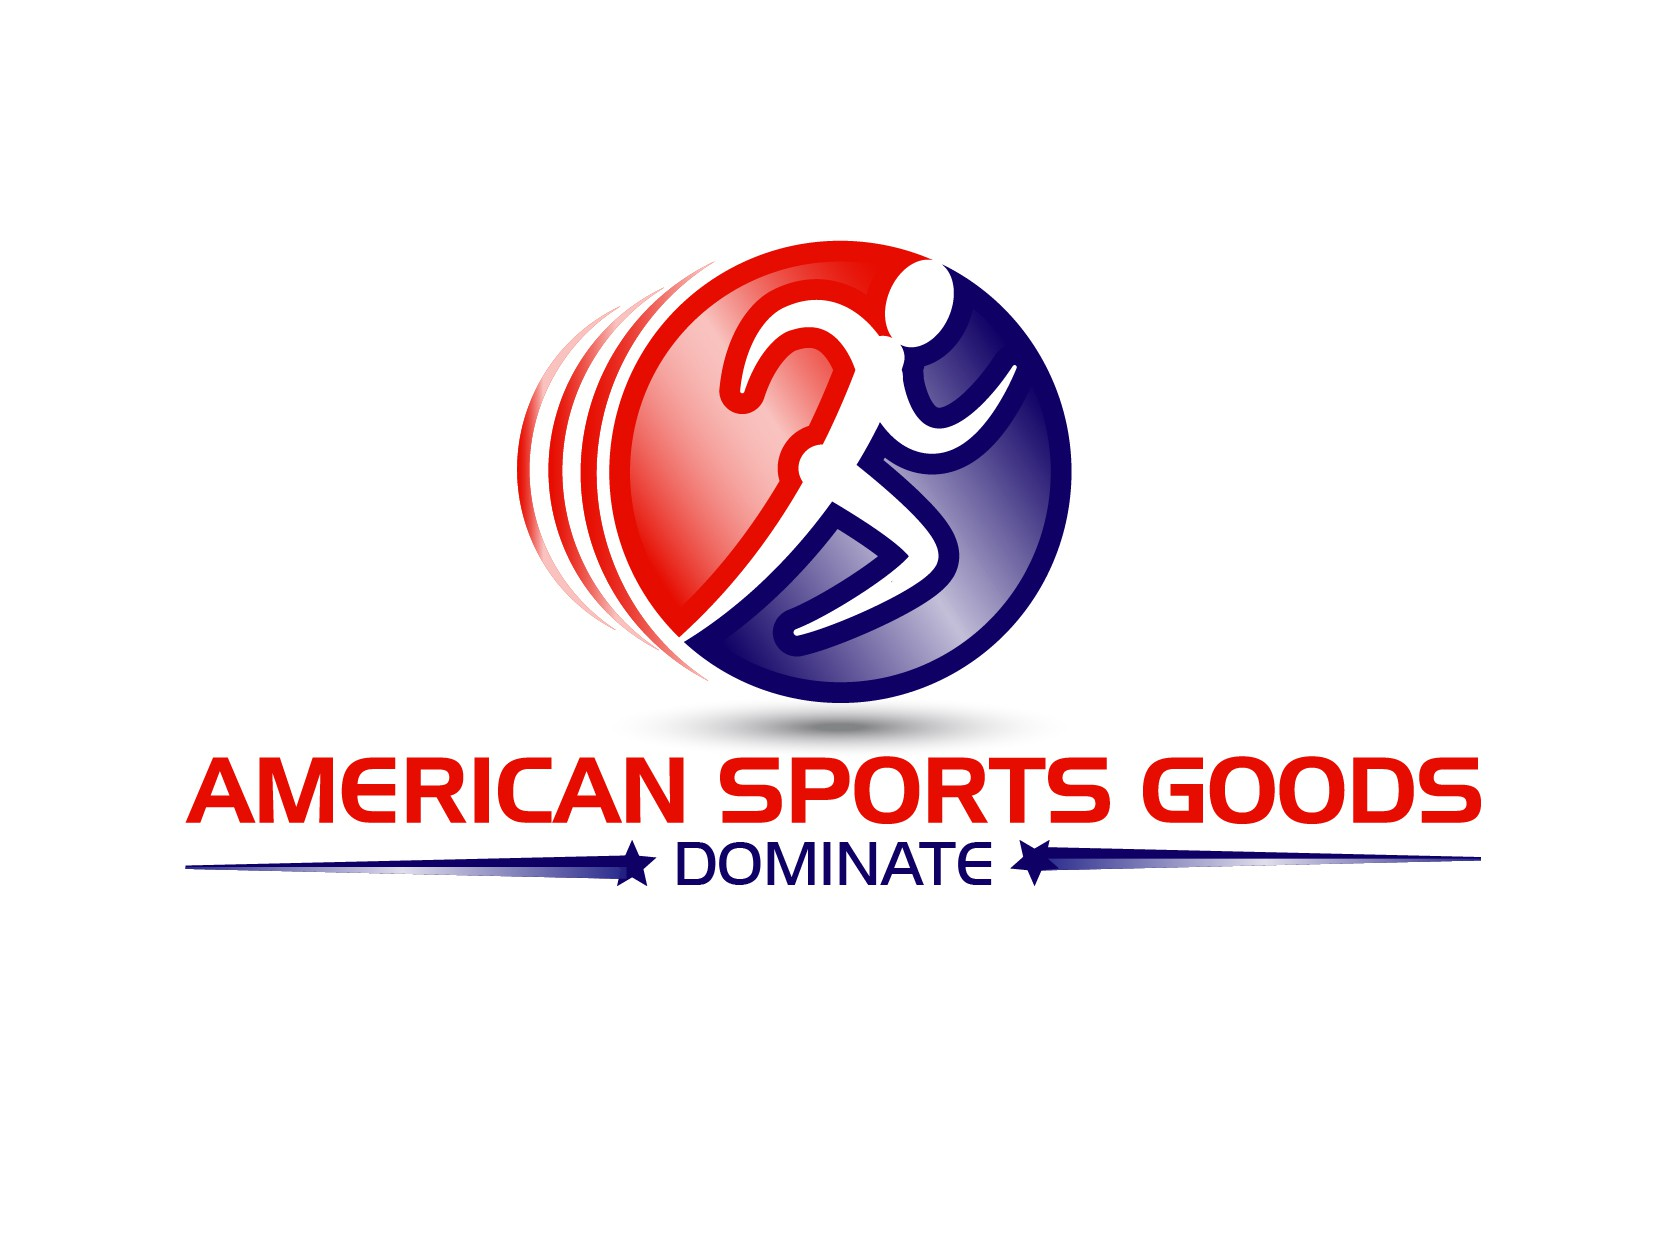 Design fun and exciting logo for American Sports Goods